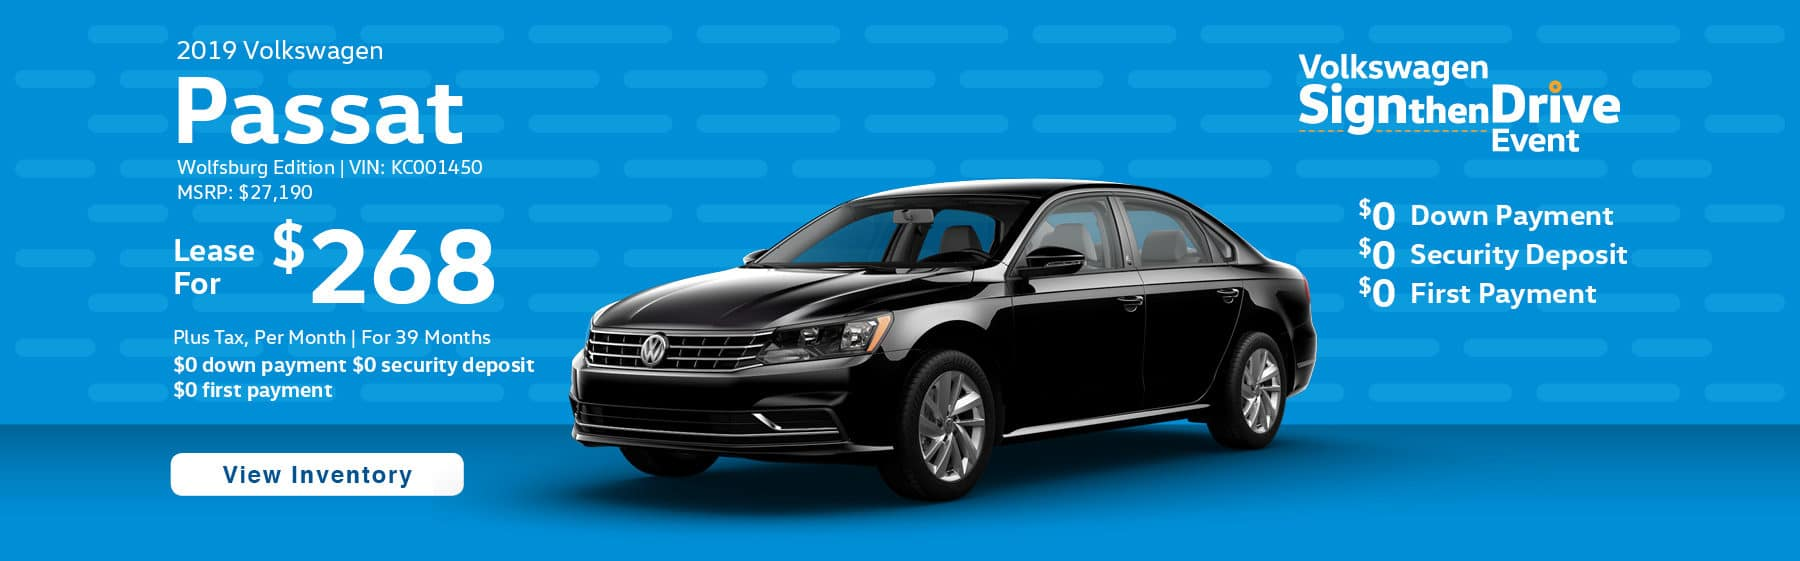 Lease the 2019 Volkswagen Passat Wolfsburg Edition for $268 plus tax for 39 months. $0 Down payment required.